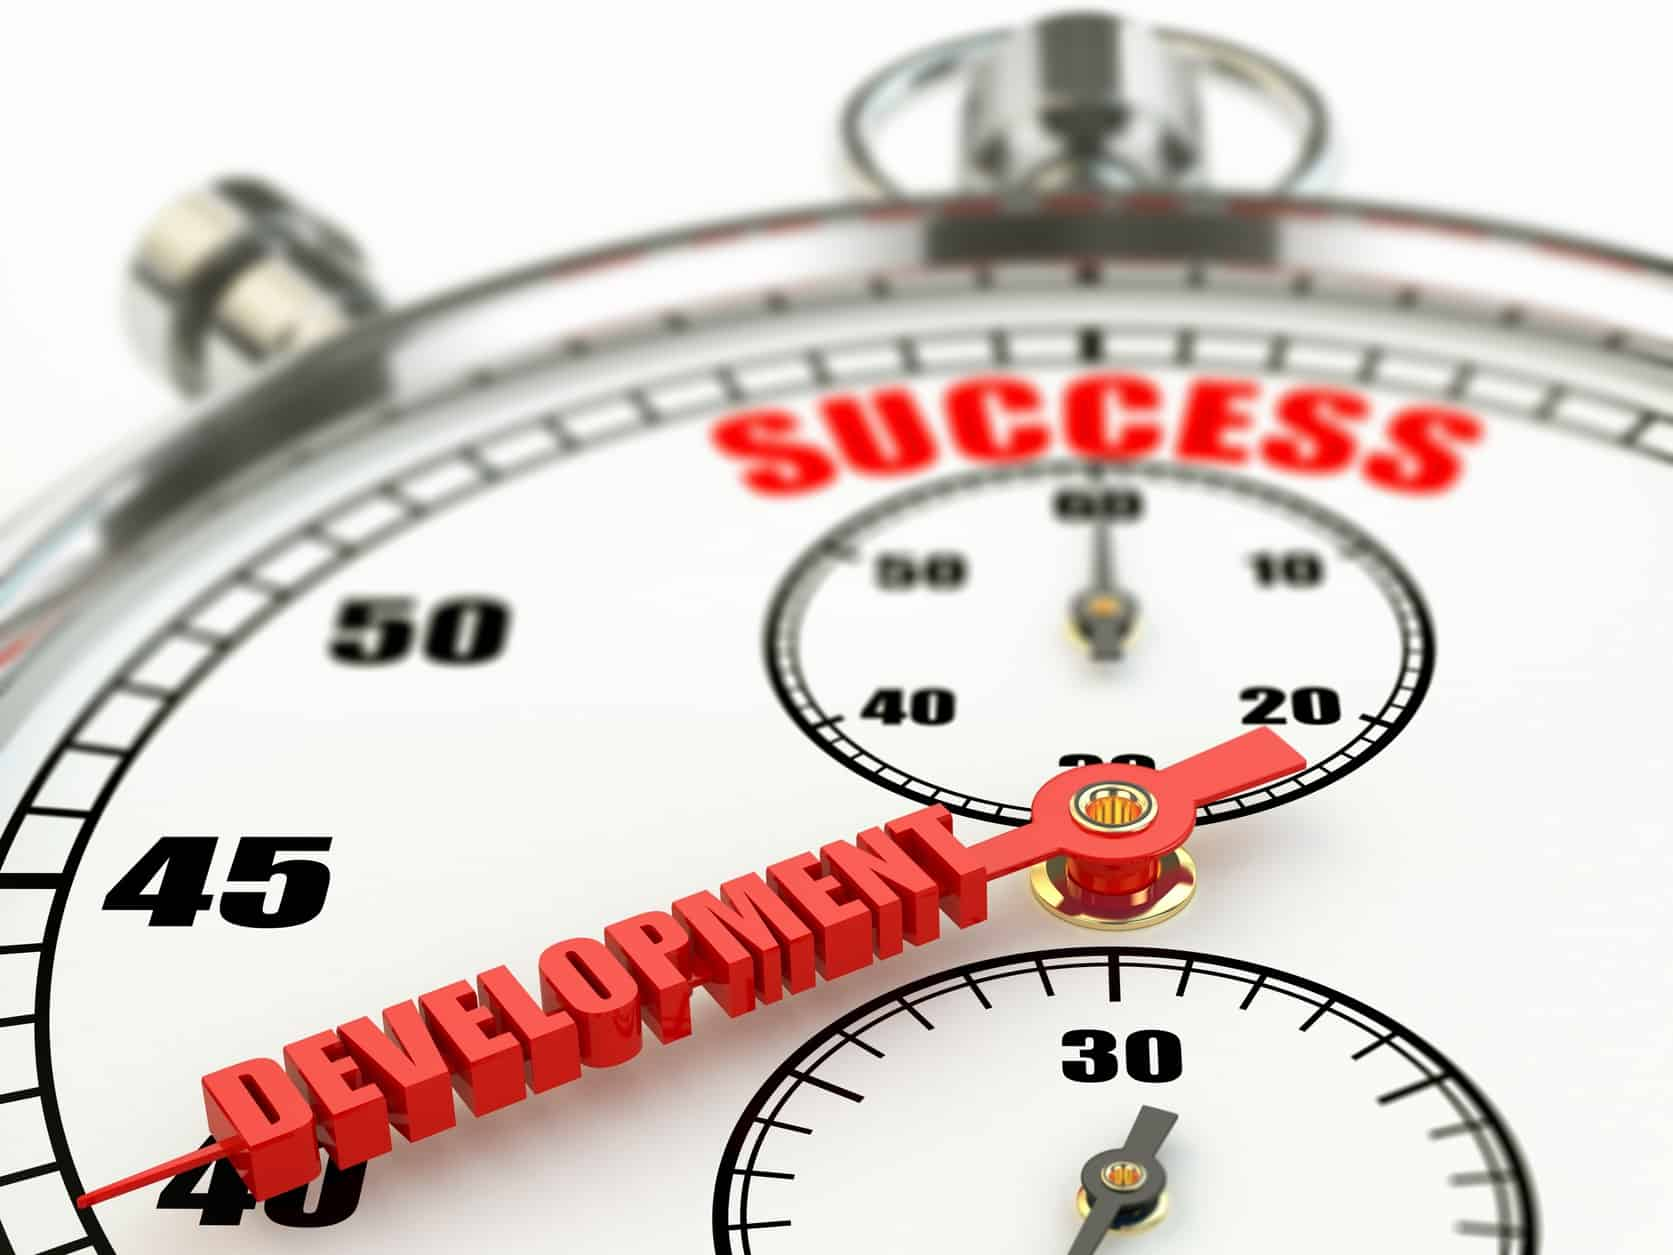 10 Reasons Why I'm Proud to be Prospecting